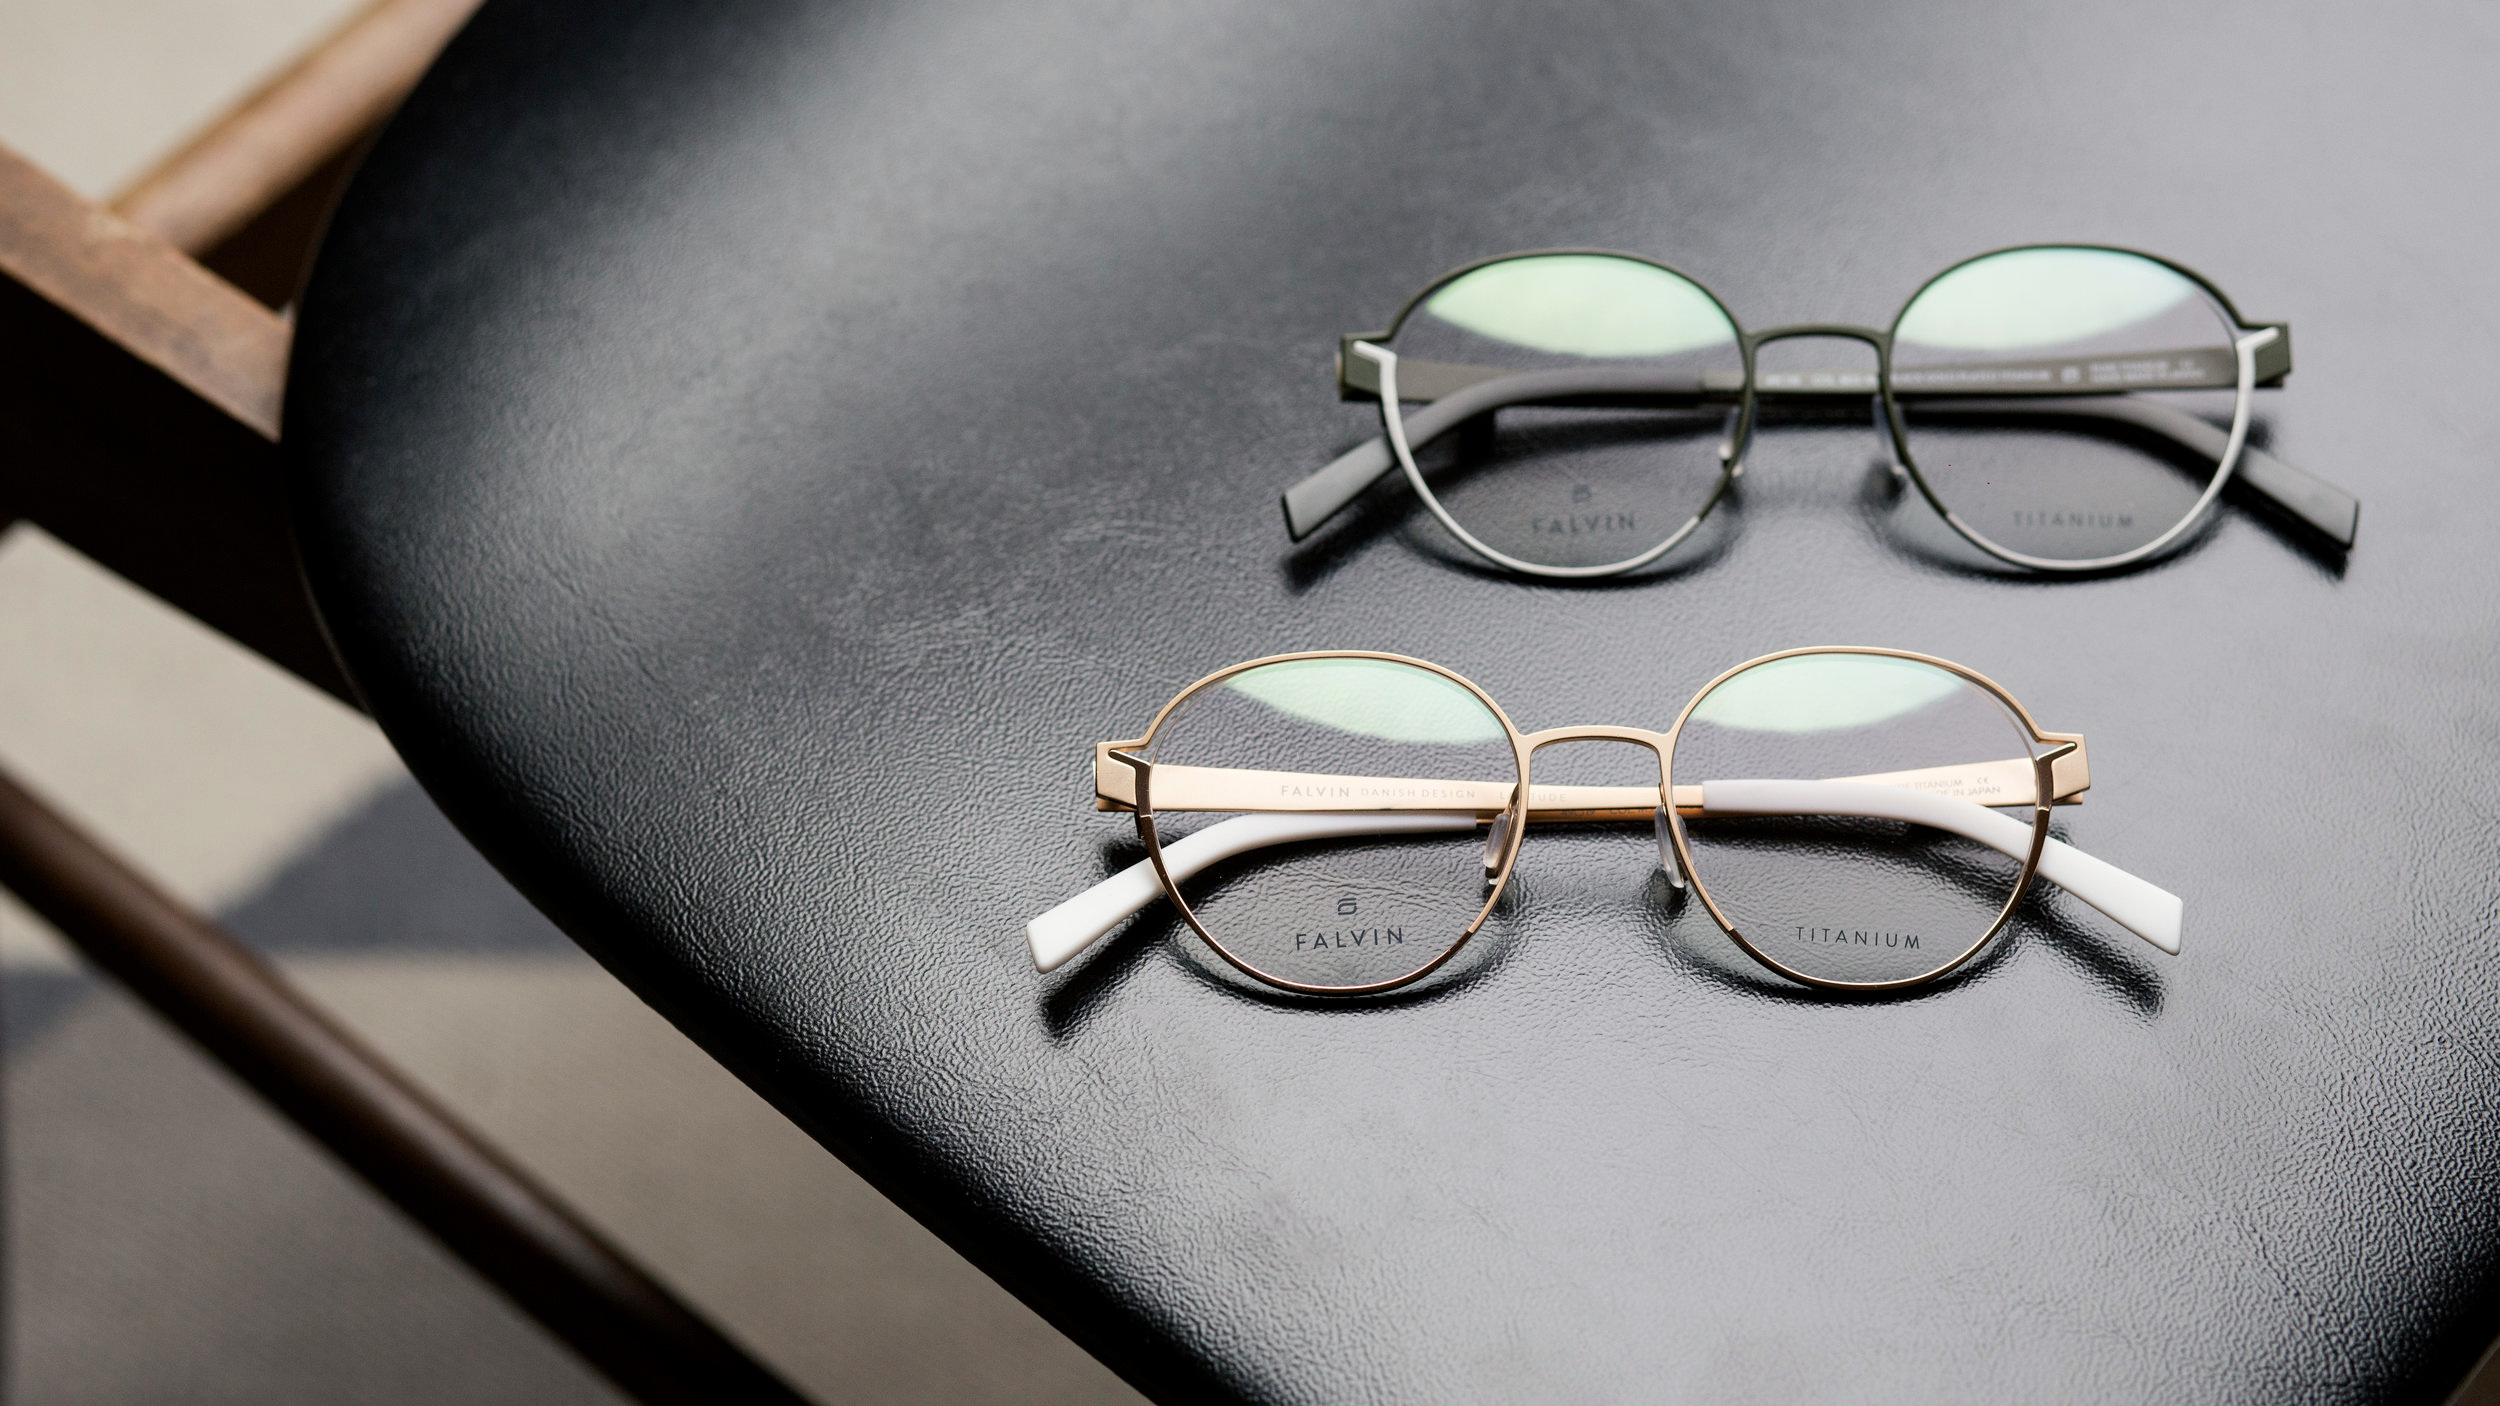 DECORATION - Display the frames together to show the design lineDisplay the handmade leather case together with the framesTip: Underline the inclined details on the front with other inclined or angular elements; e.g. the lid from the case